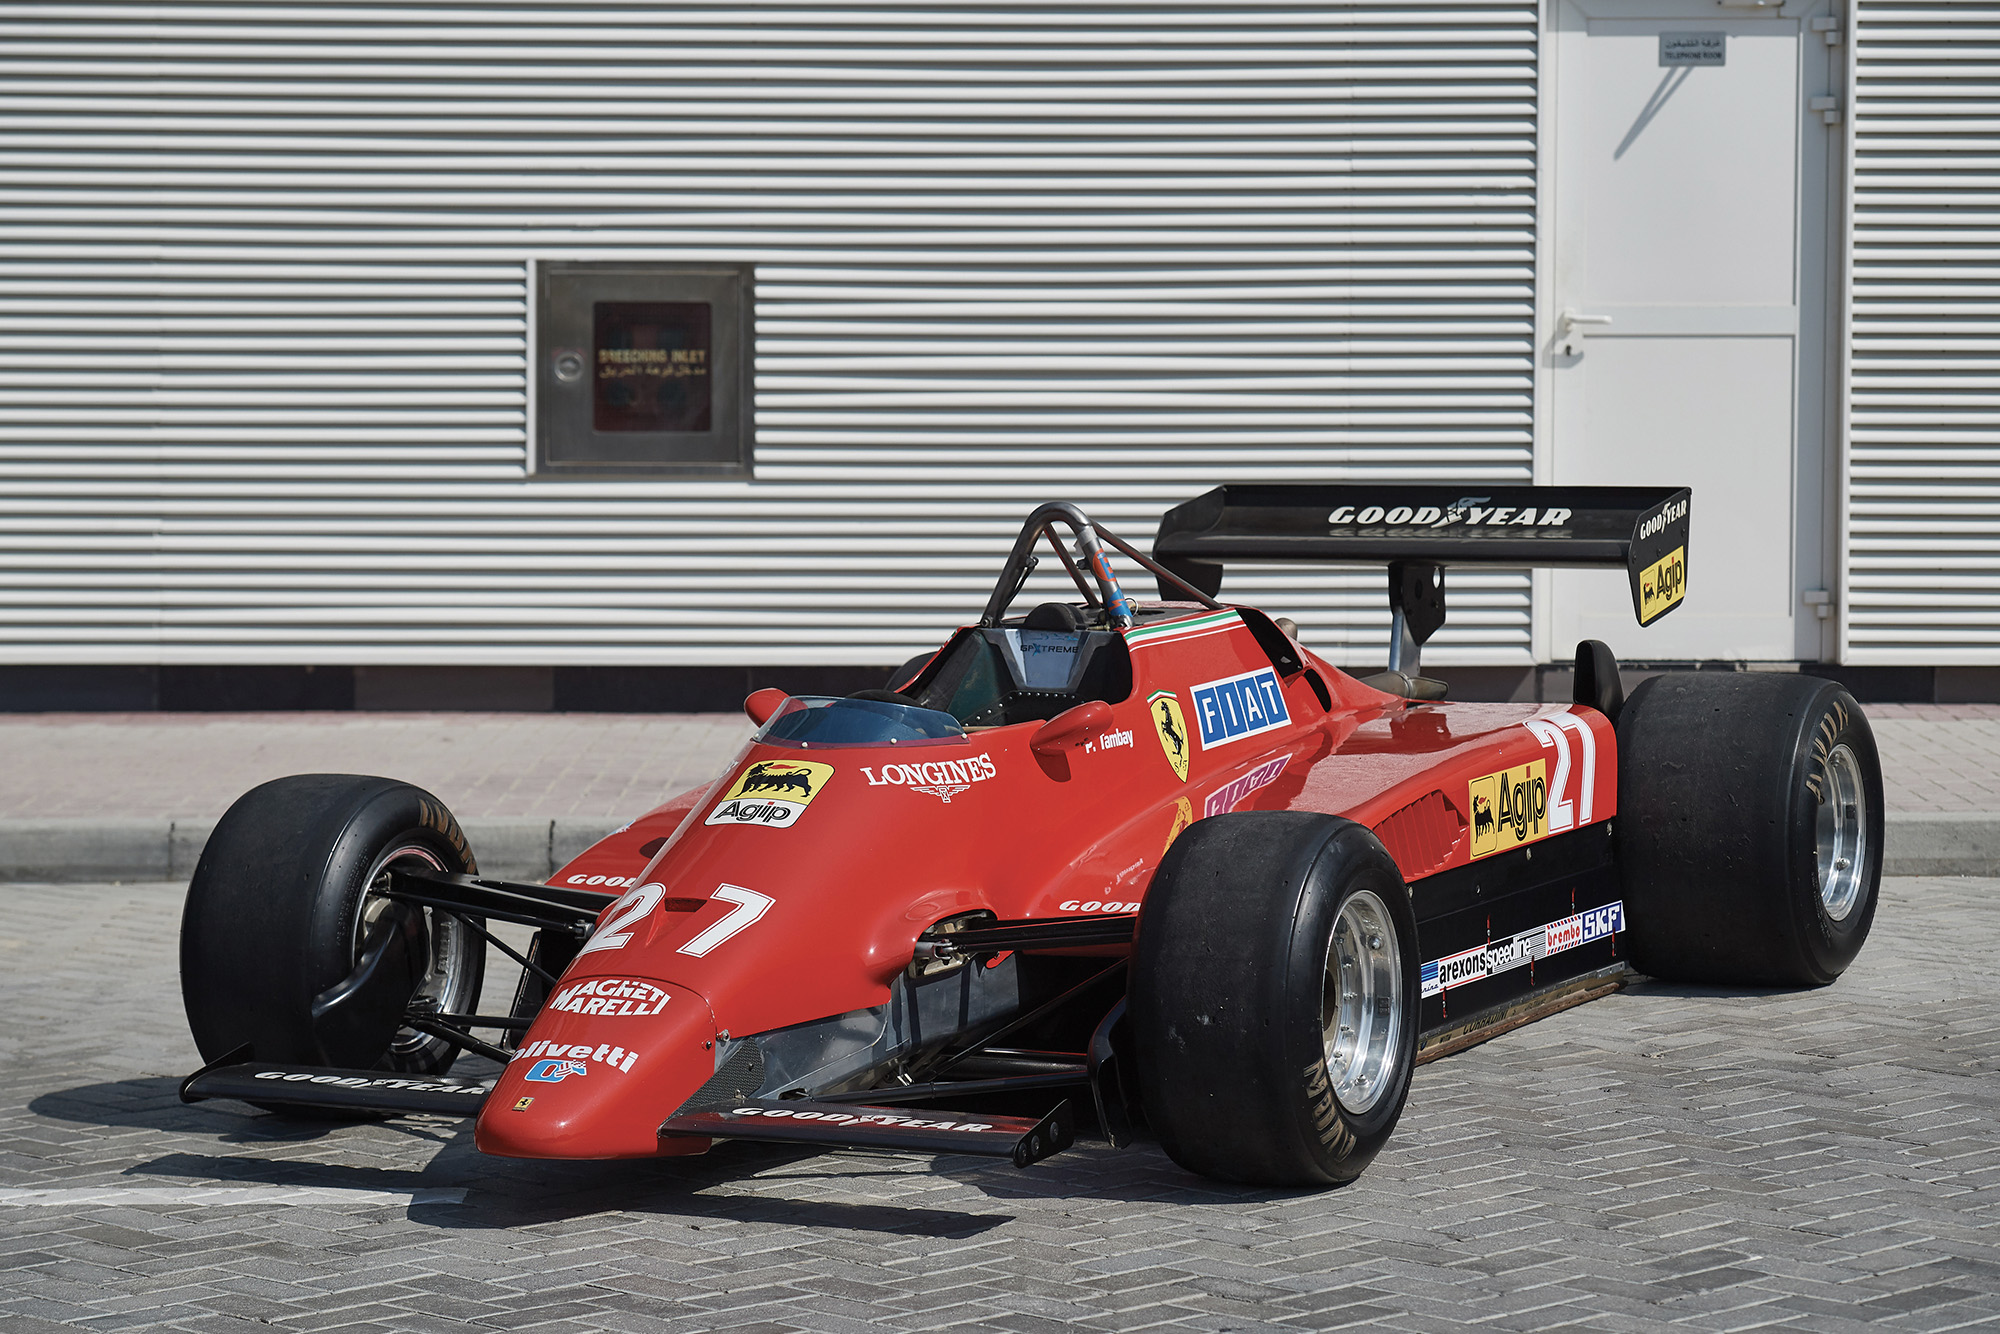 Tambay & Andretti's 1982 F1 grand prix-winning Ferrari up for auction